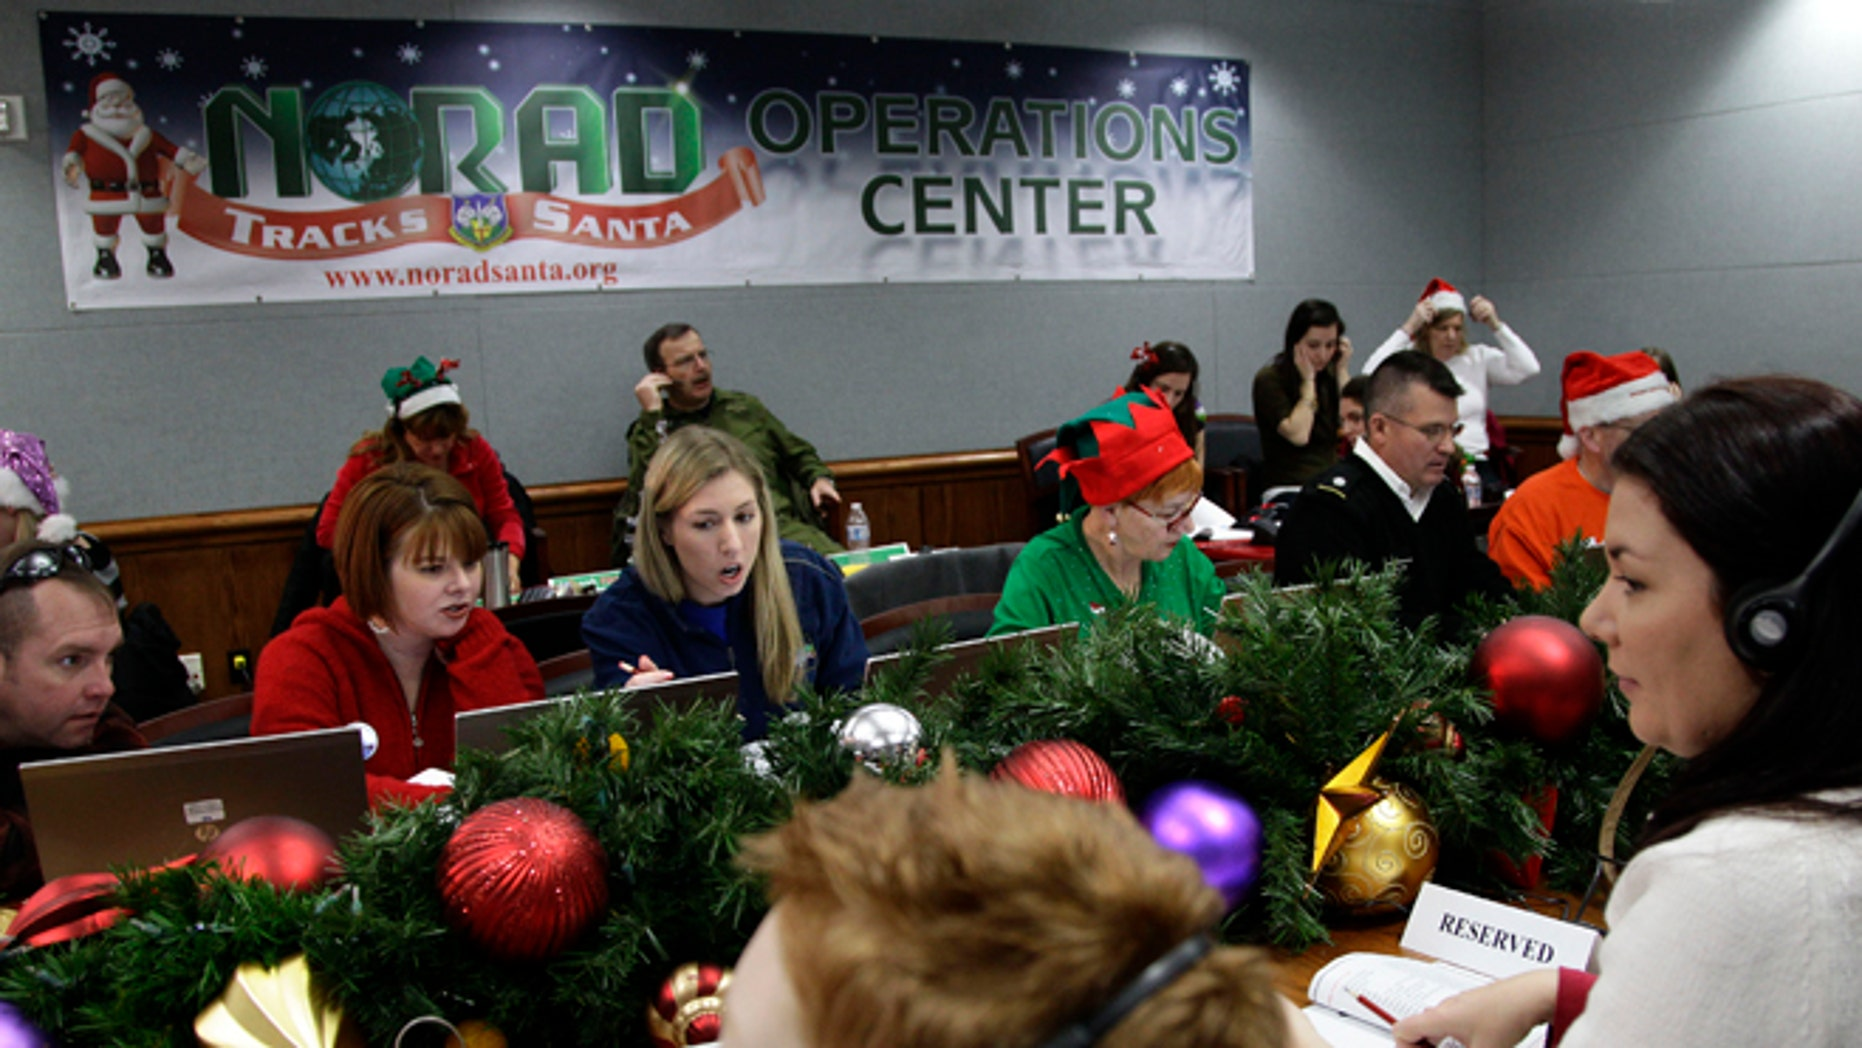 Dec. 24, 2012: Volunteers take phone calls from children asking where Santa is and when he will deliver presents to their house, during the annual NORAD Tracks Santa Operation, at the North American Aerospace Defense Command, or NORAD, at Peterson Air Force Base, in Colorado Springs, Colo.